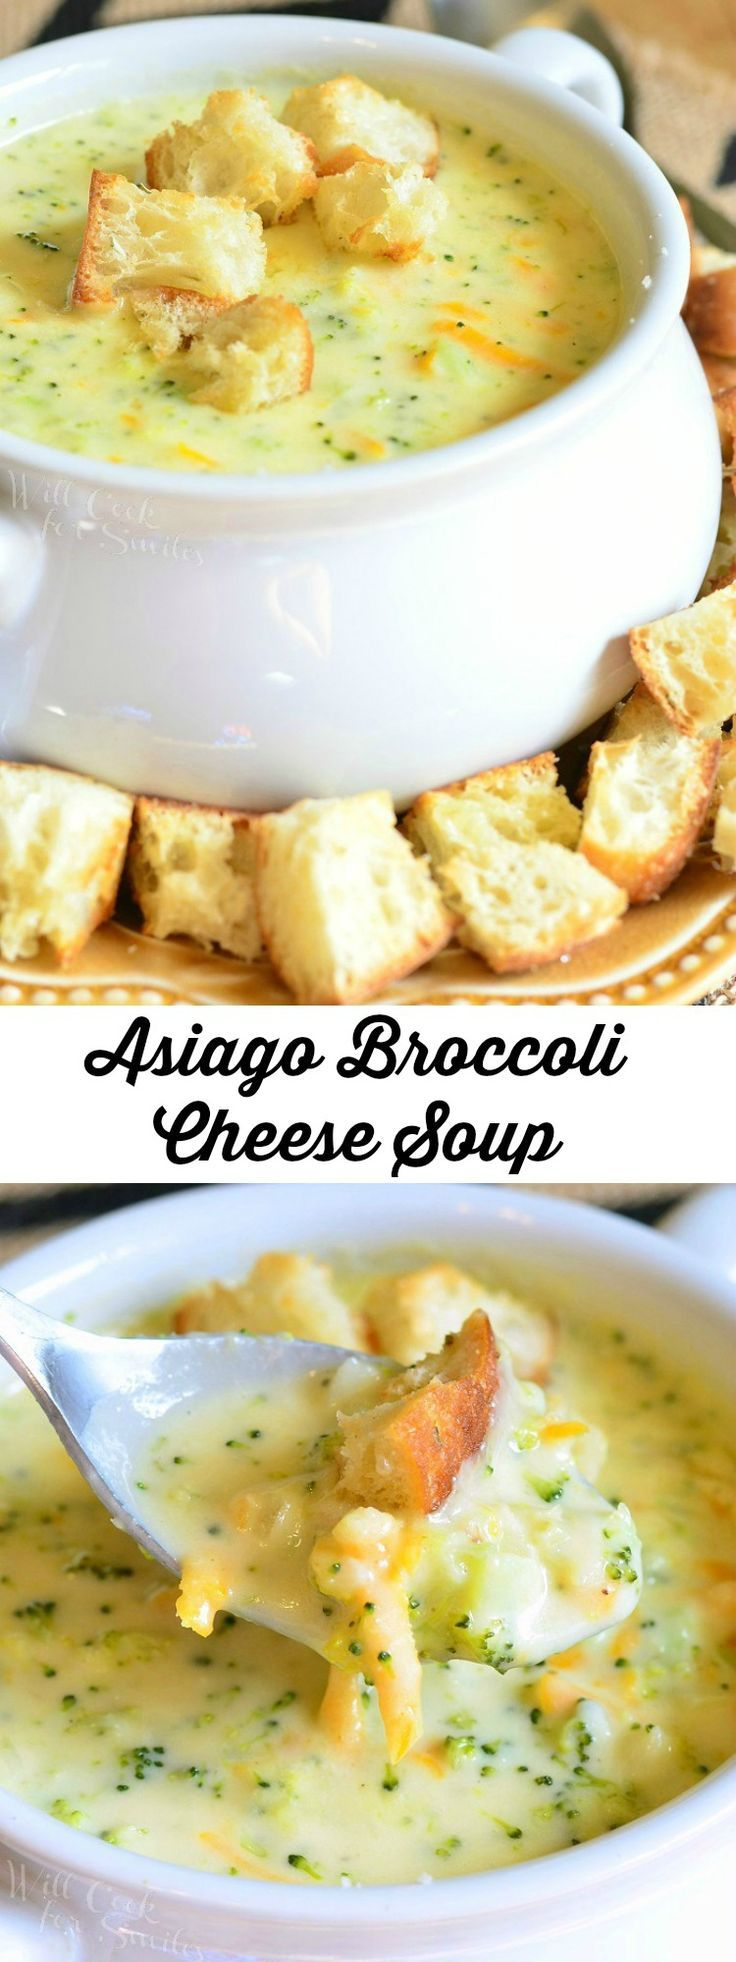 Asiago Broccoli Cheese Soup | from http://willcookforsmiles.com #comfortfood #soup #cheese